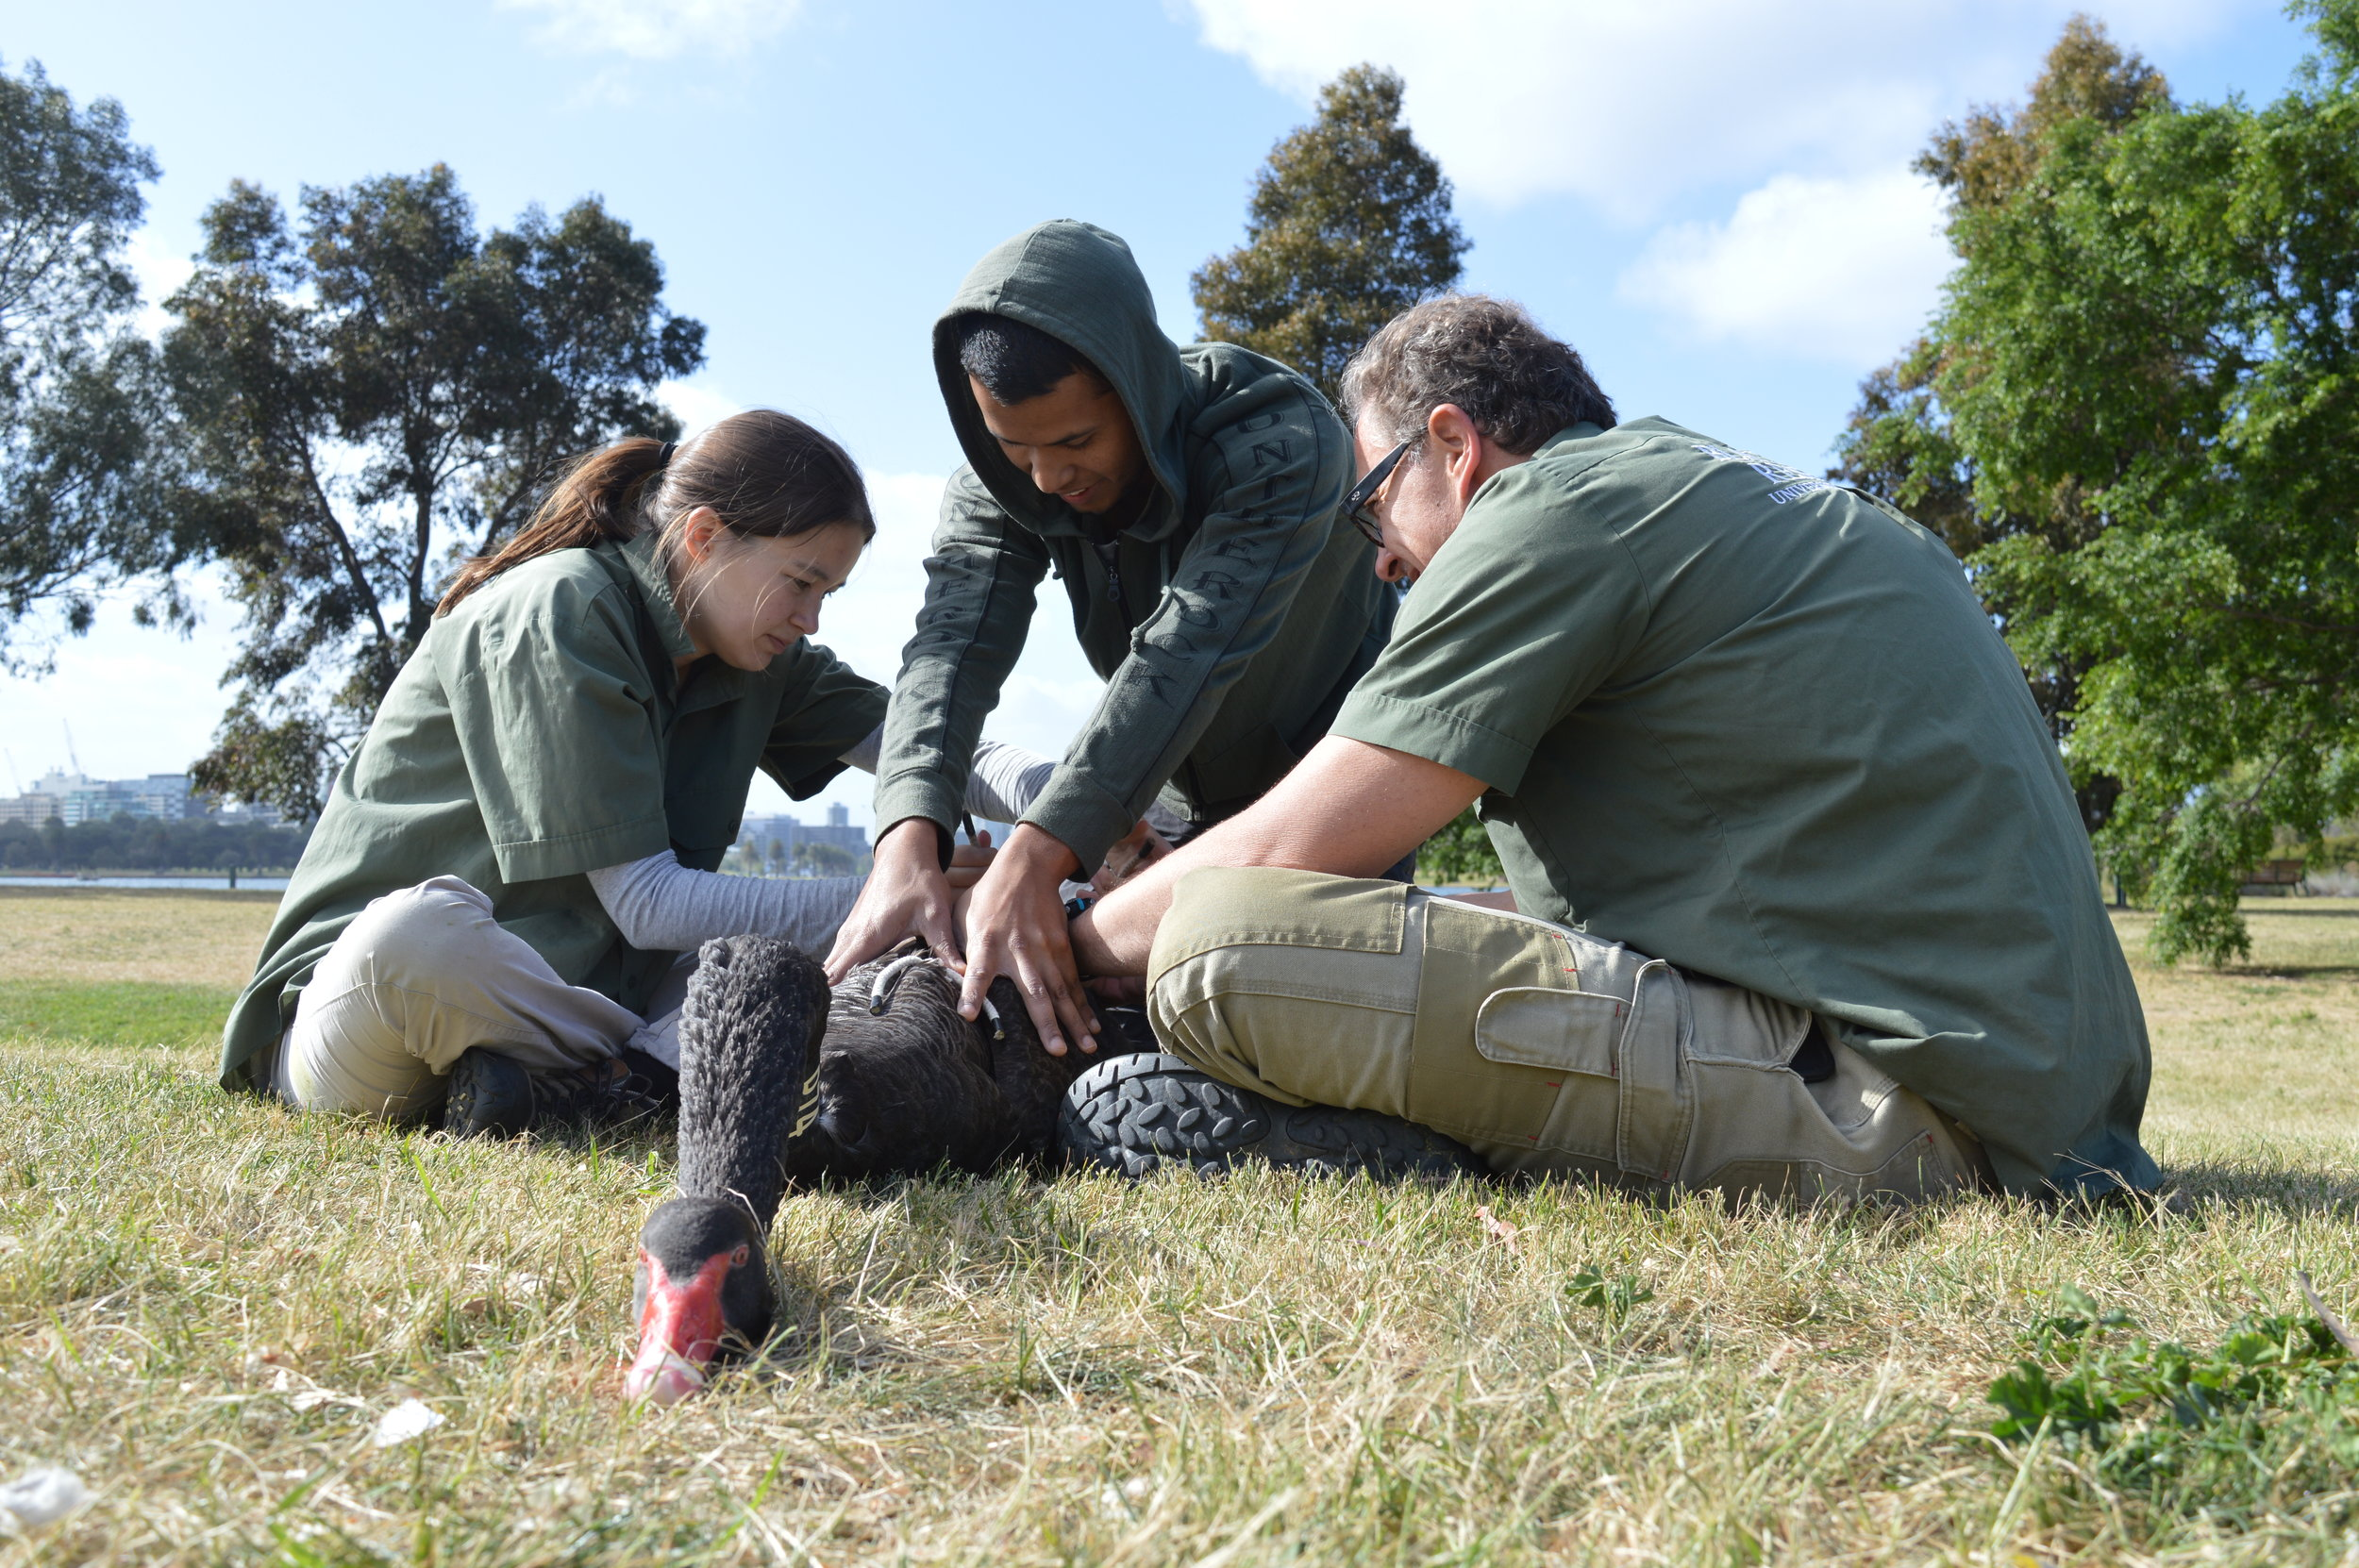 University of Melbourne researchers Anne Aulsebrook (left) and Raoul Mulder (right), assisted by a volunteer, process a black swan at Albert Park, Melbourne. © Andrew Katsis